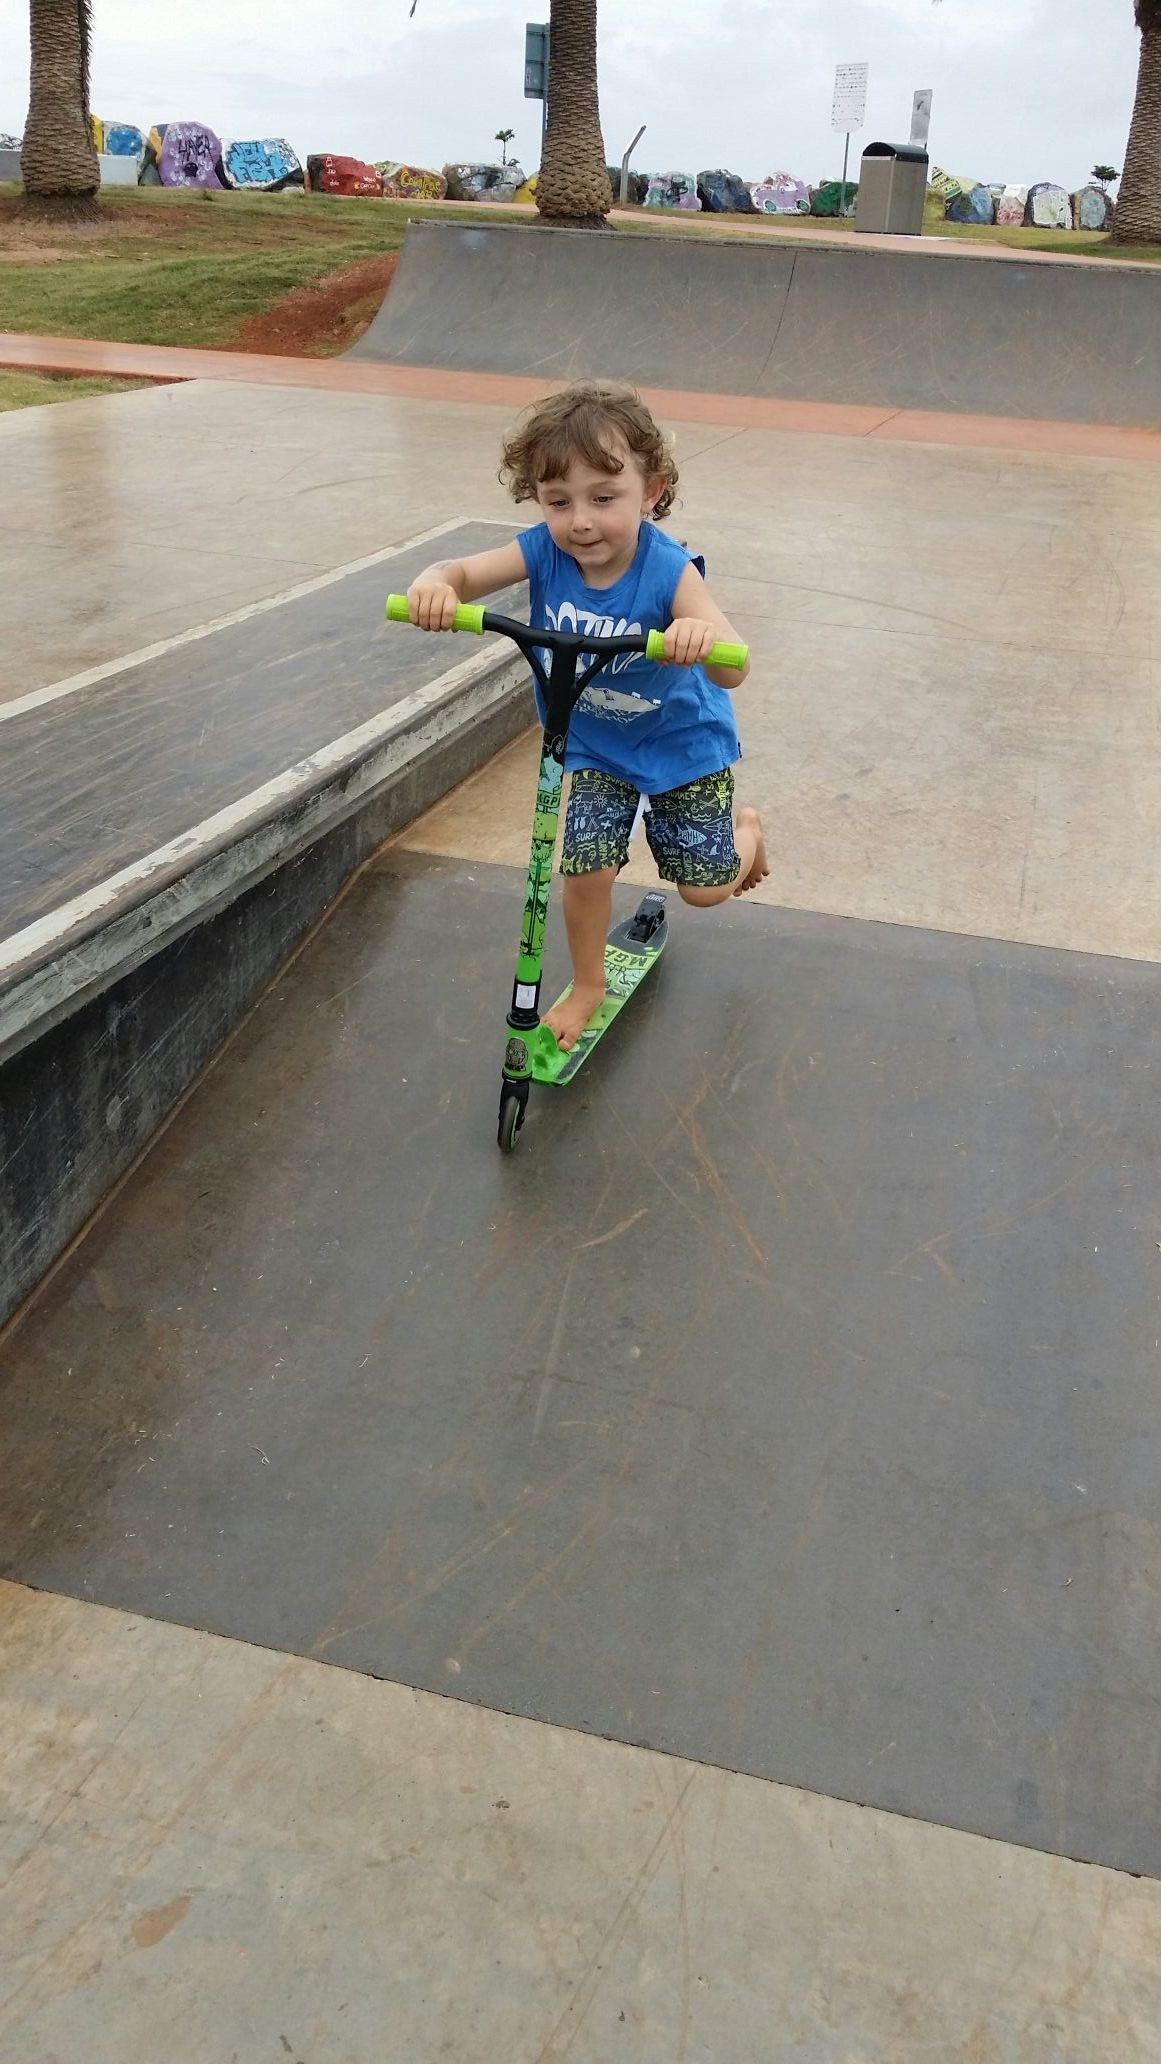 Little skater dude at the skate park with his xmas pressie...happy xmas